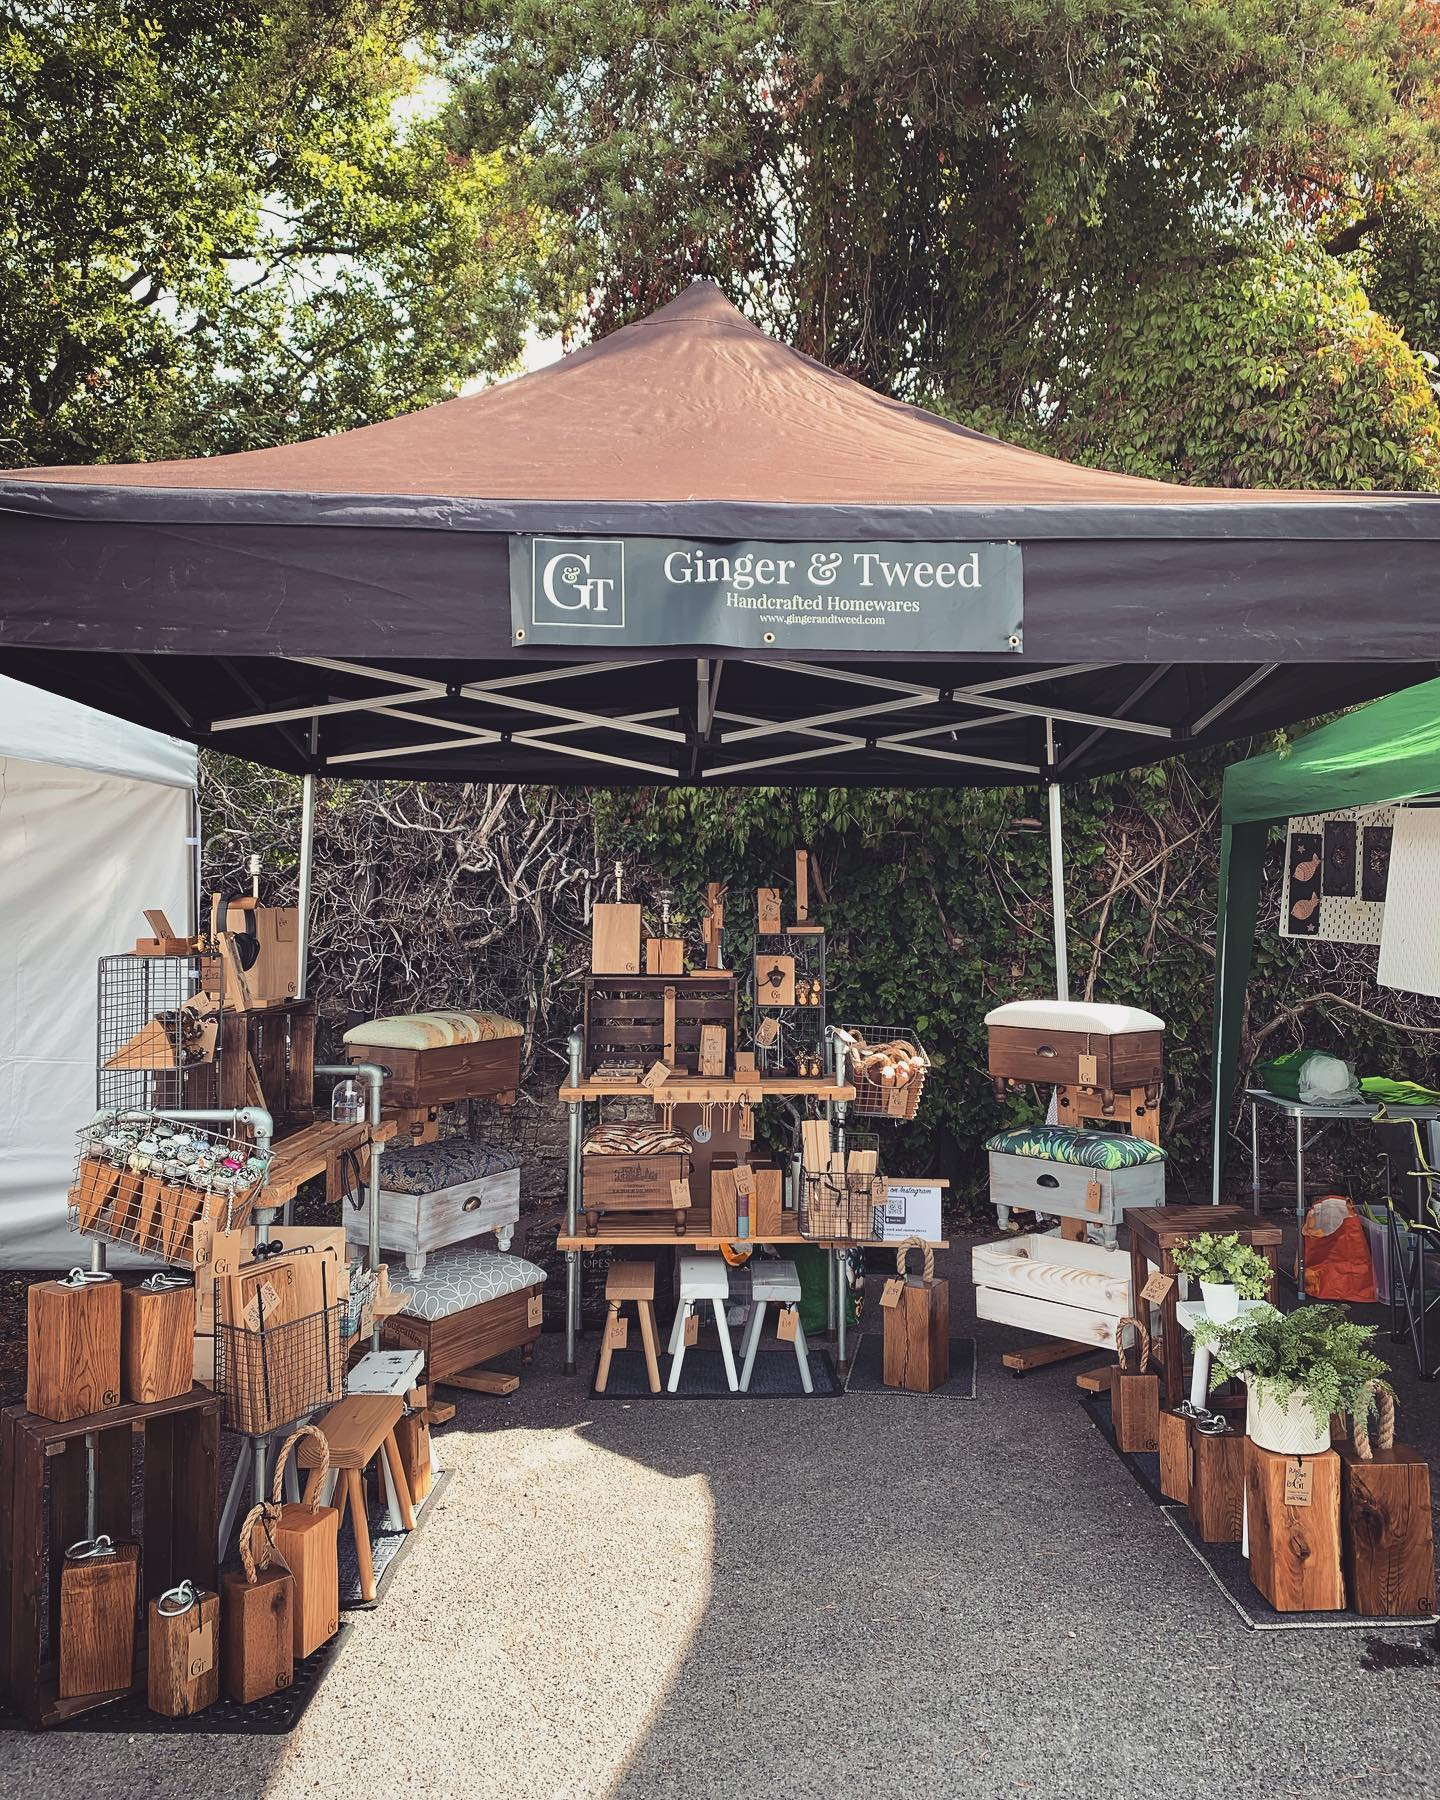 @theatworthartisan is in full swing! Here until 3pm. ...#handcrafted #homedecor #shopsmall #localmarket #villagelife